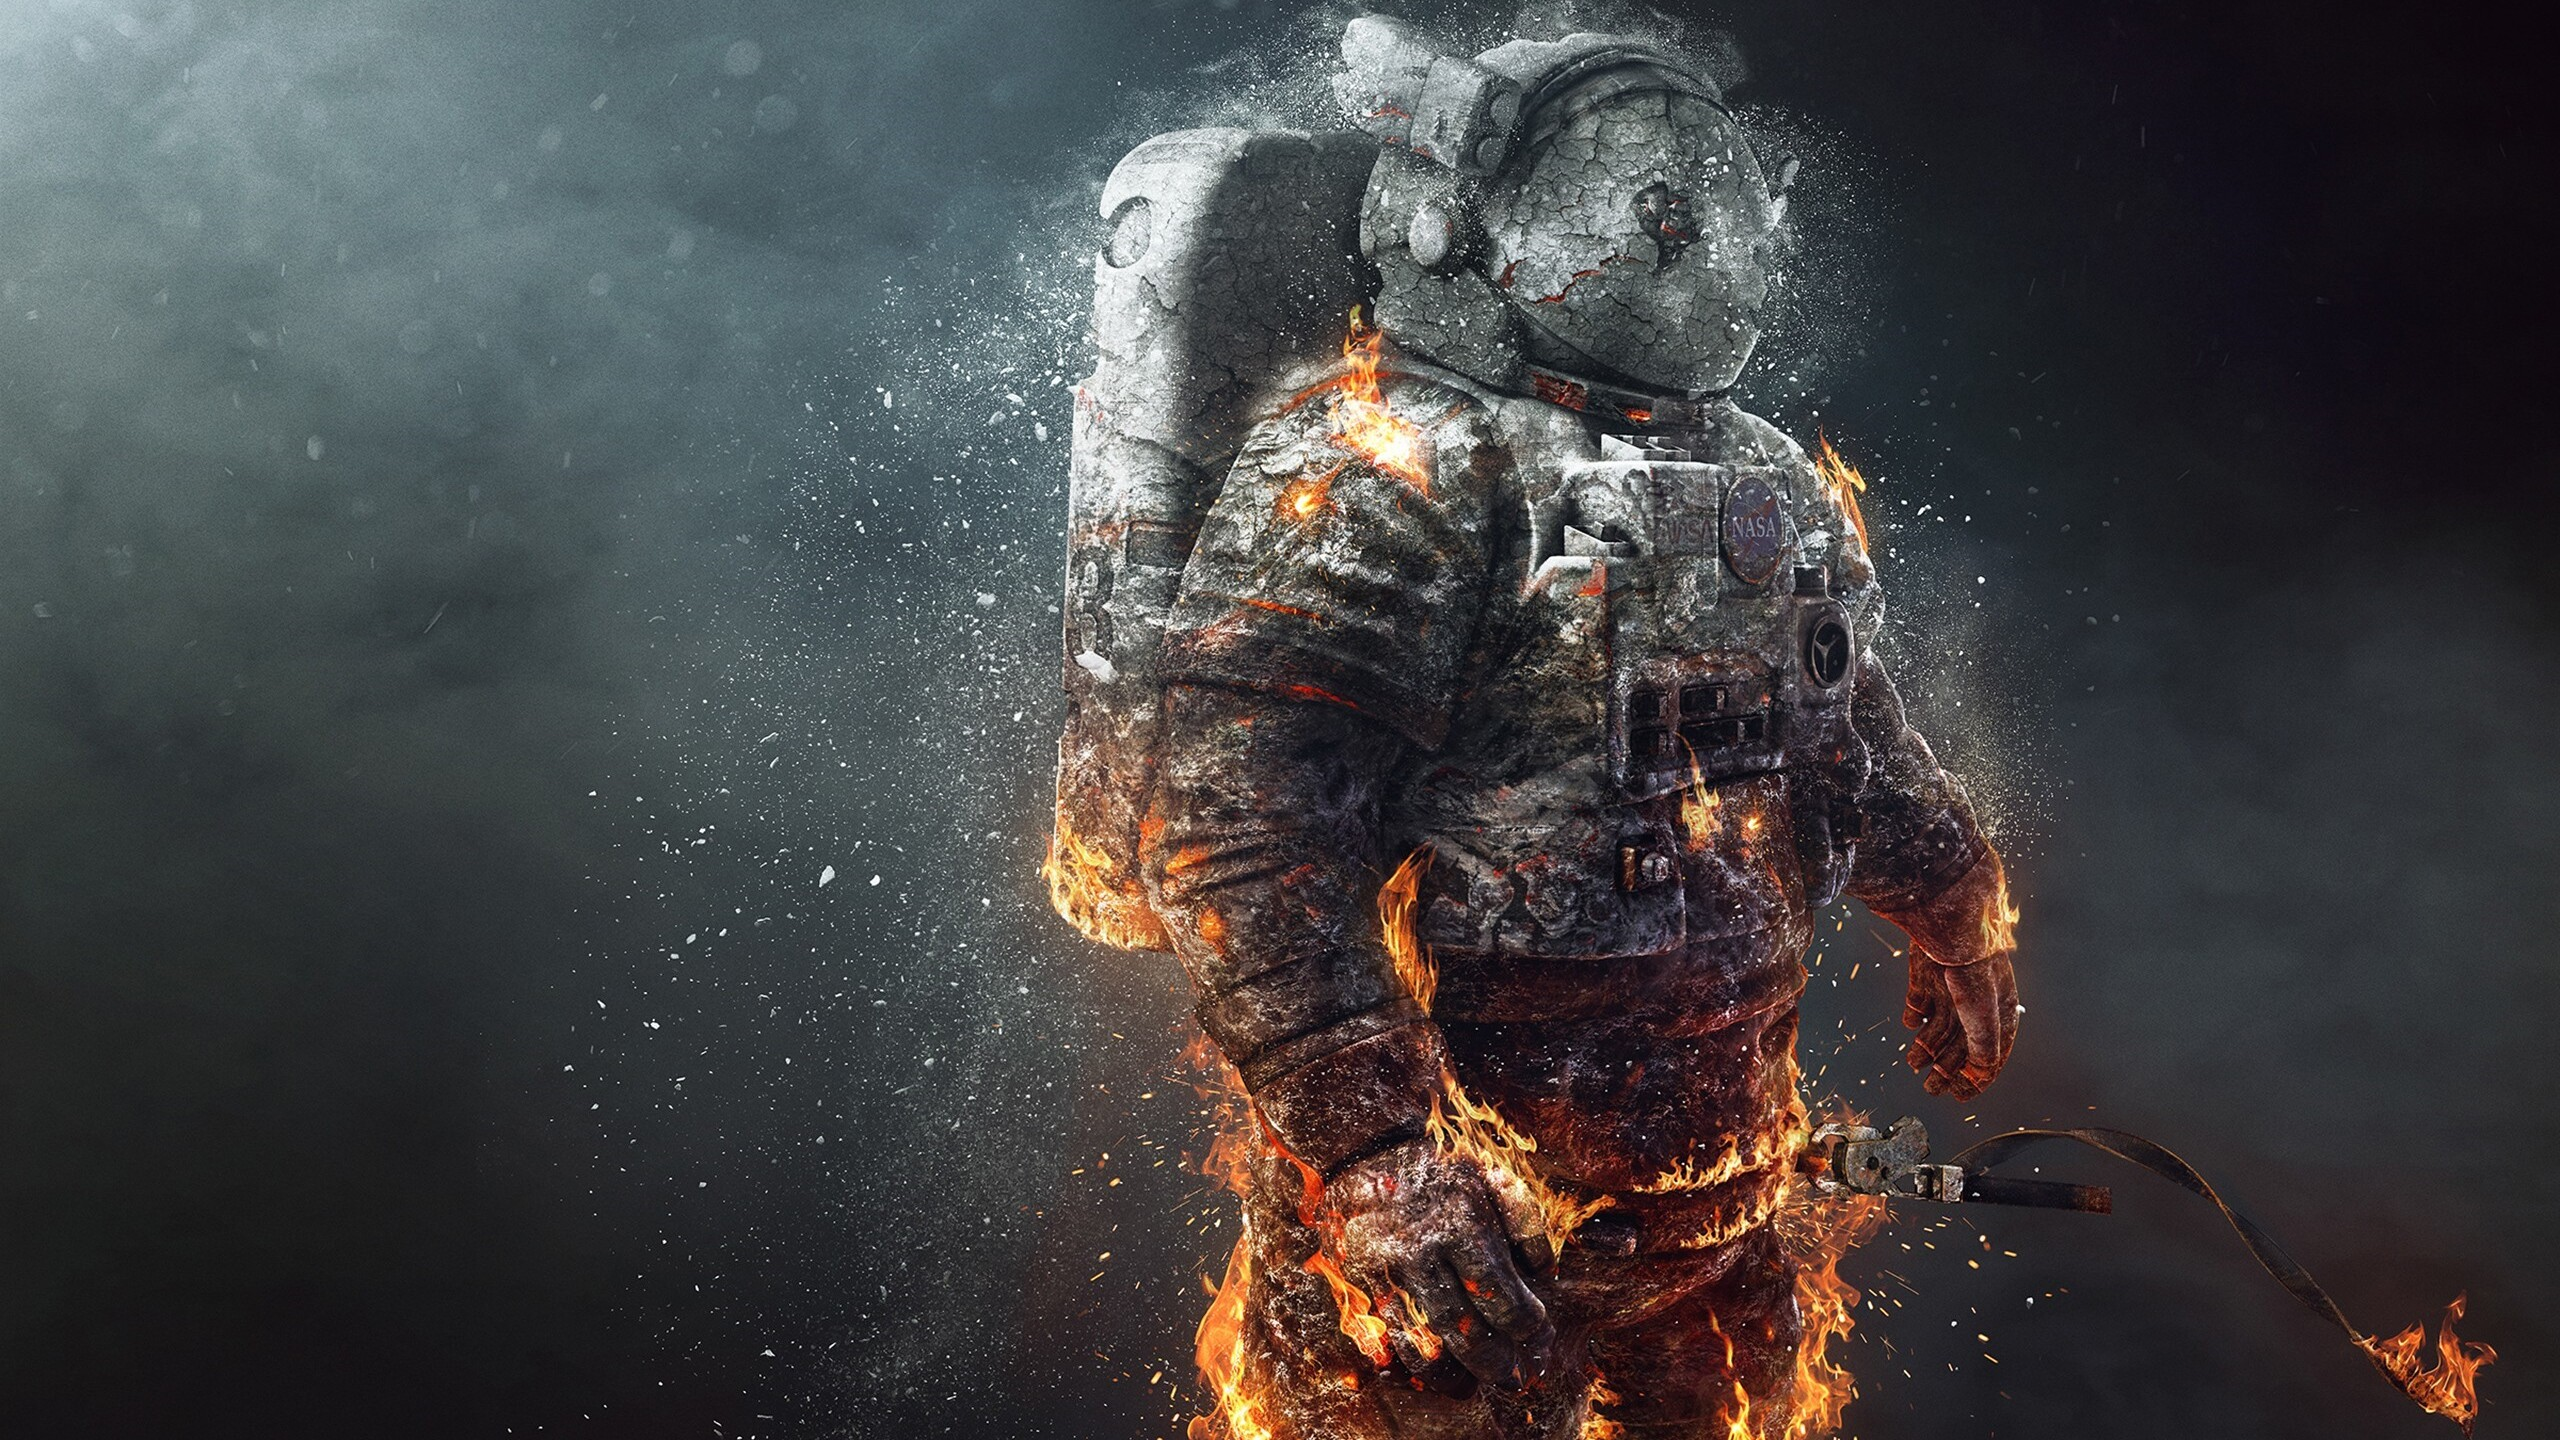 2560x1440 Astronaut Fire Scifi 1440P Resolution HD 4k Wallpapers, Images, Backgrounds, Photos and Pictures